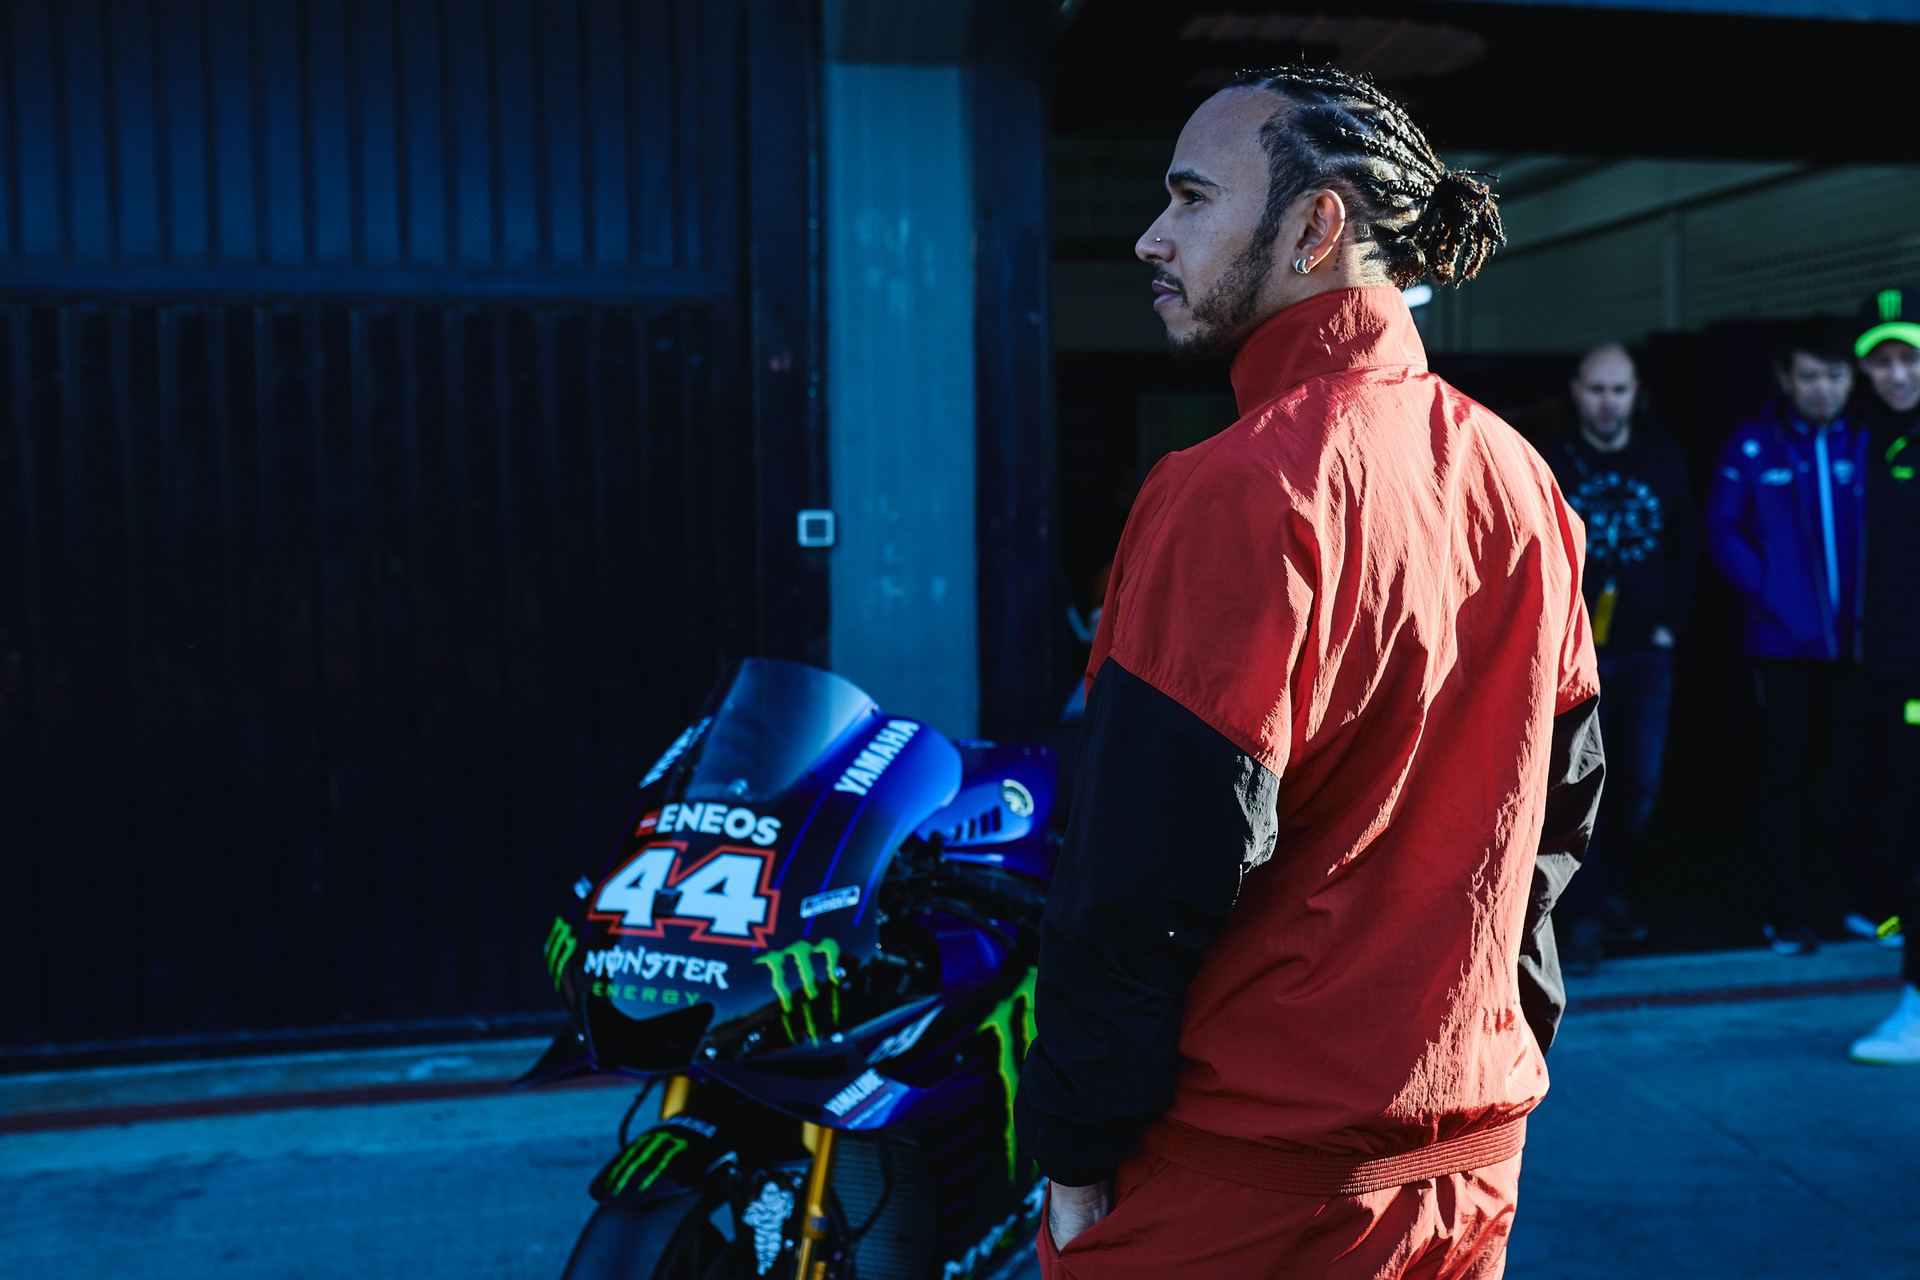 VALENCIA, SPAIN - DECEMBER 8: Lewis Hamilton and Valentino Rossi swap their respective machinery during the #LH44VR46 test on December 8, 2019 in Valencia, Spain. (Photo by Guido De Bortoli/Getty Images for Monster Energy)